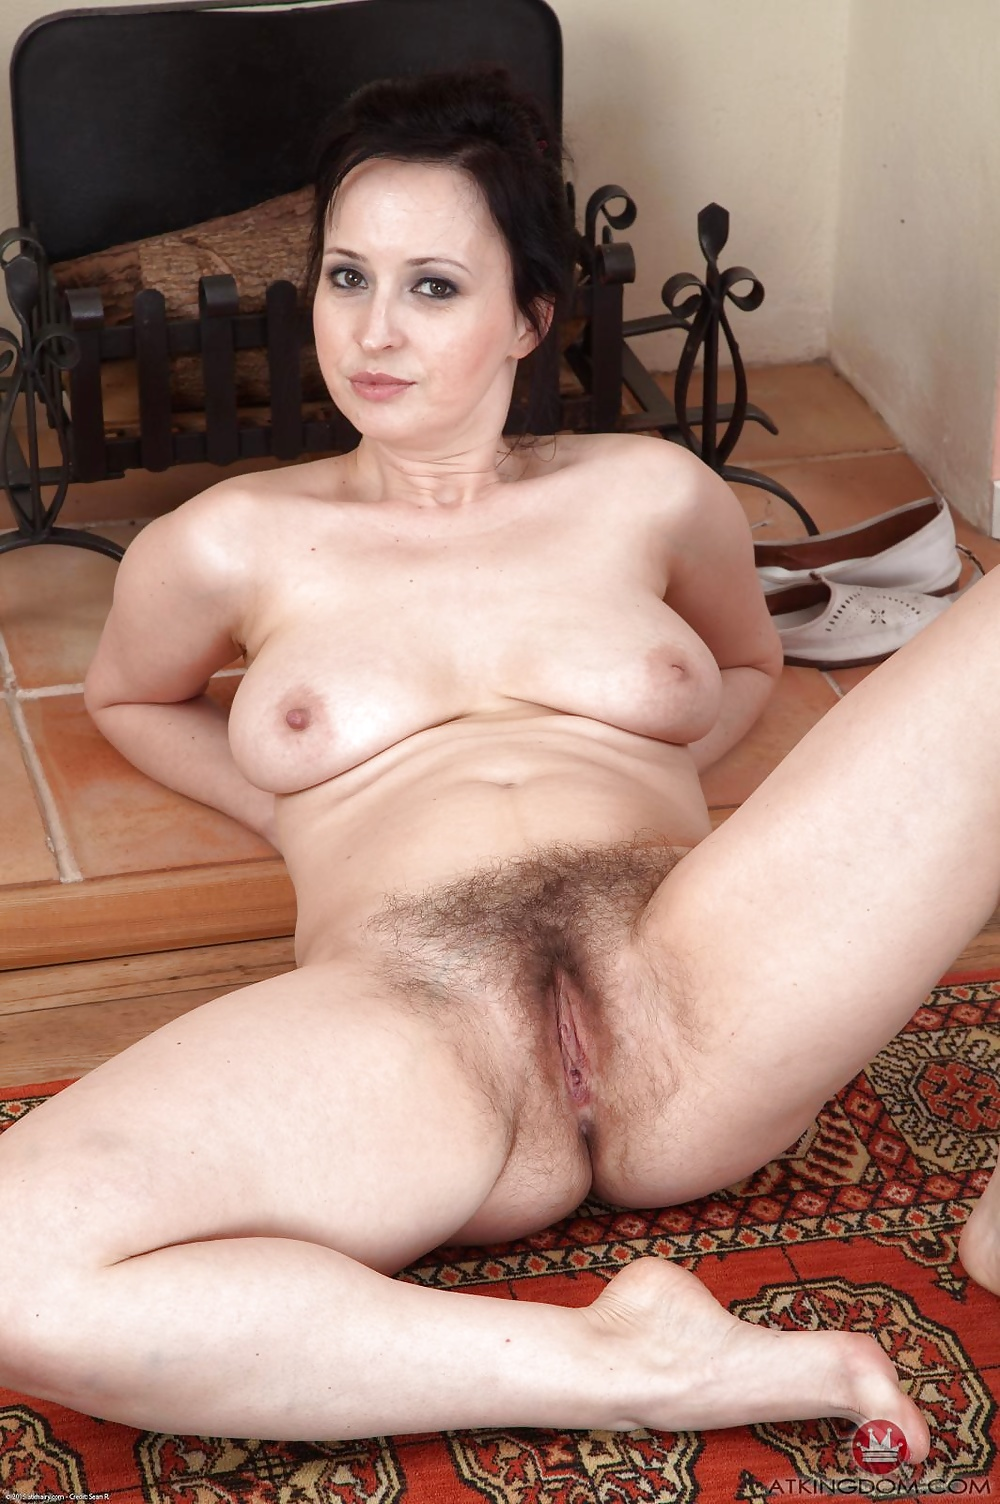 hairy-pussy-mature-brunette-picture-gallery-babes-kick